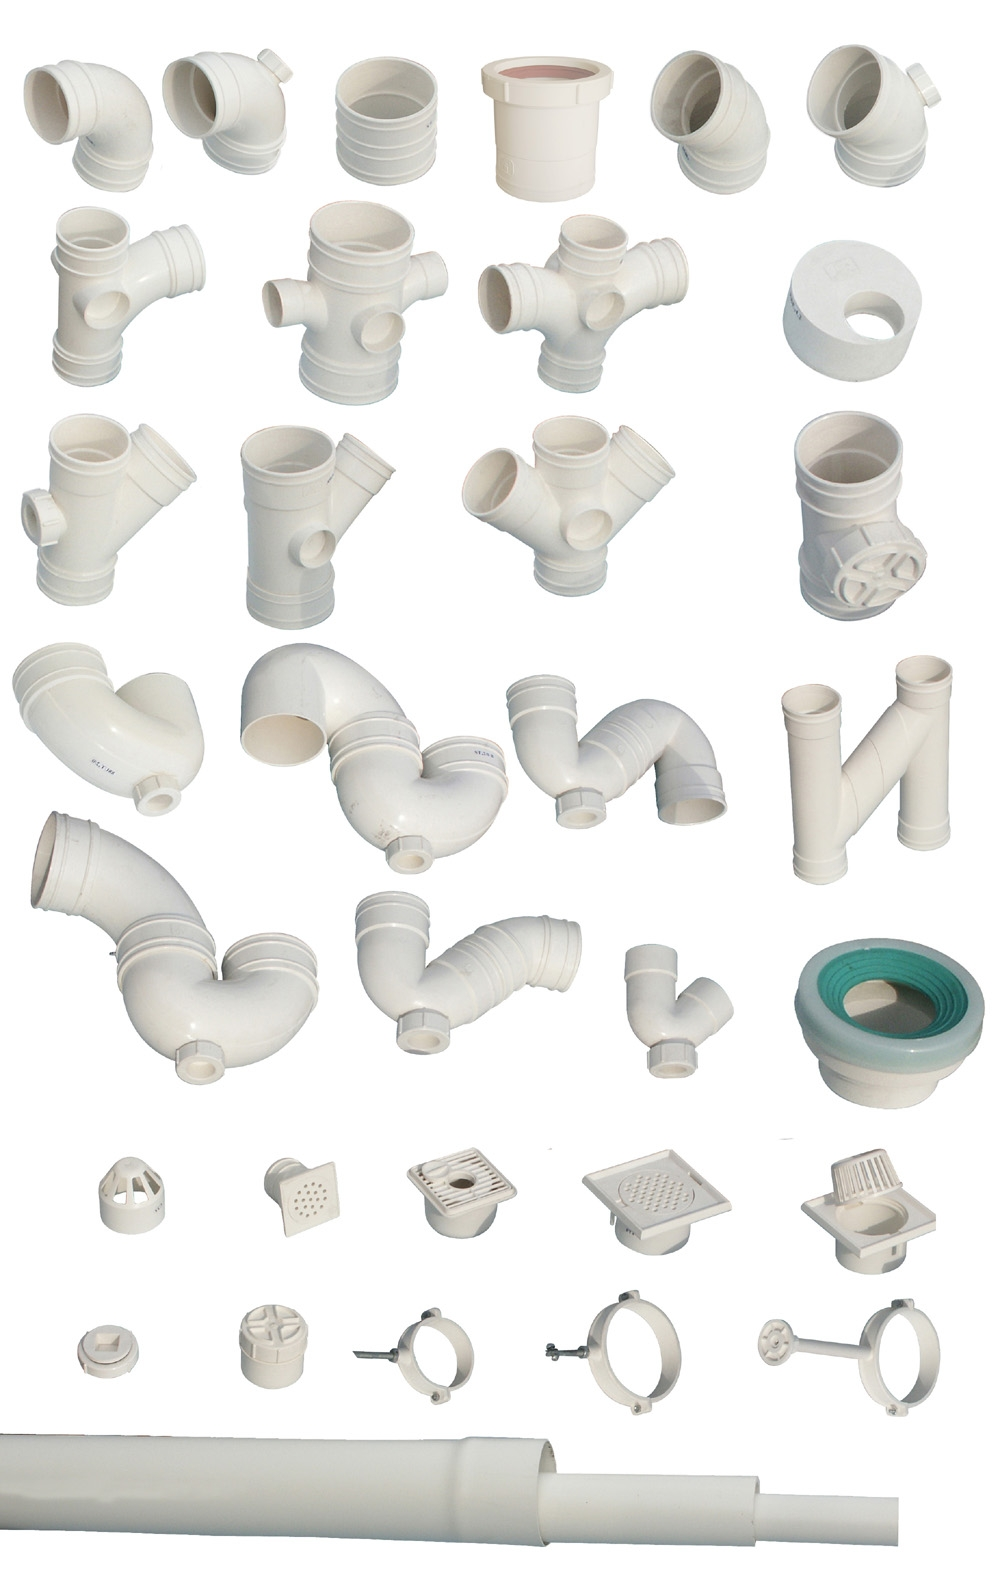 Pvc u pipe and fittings for drainage by shanghai tomson